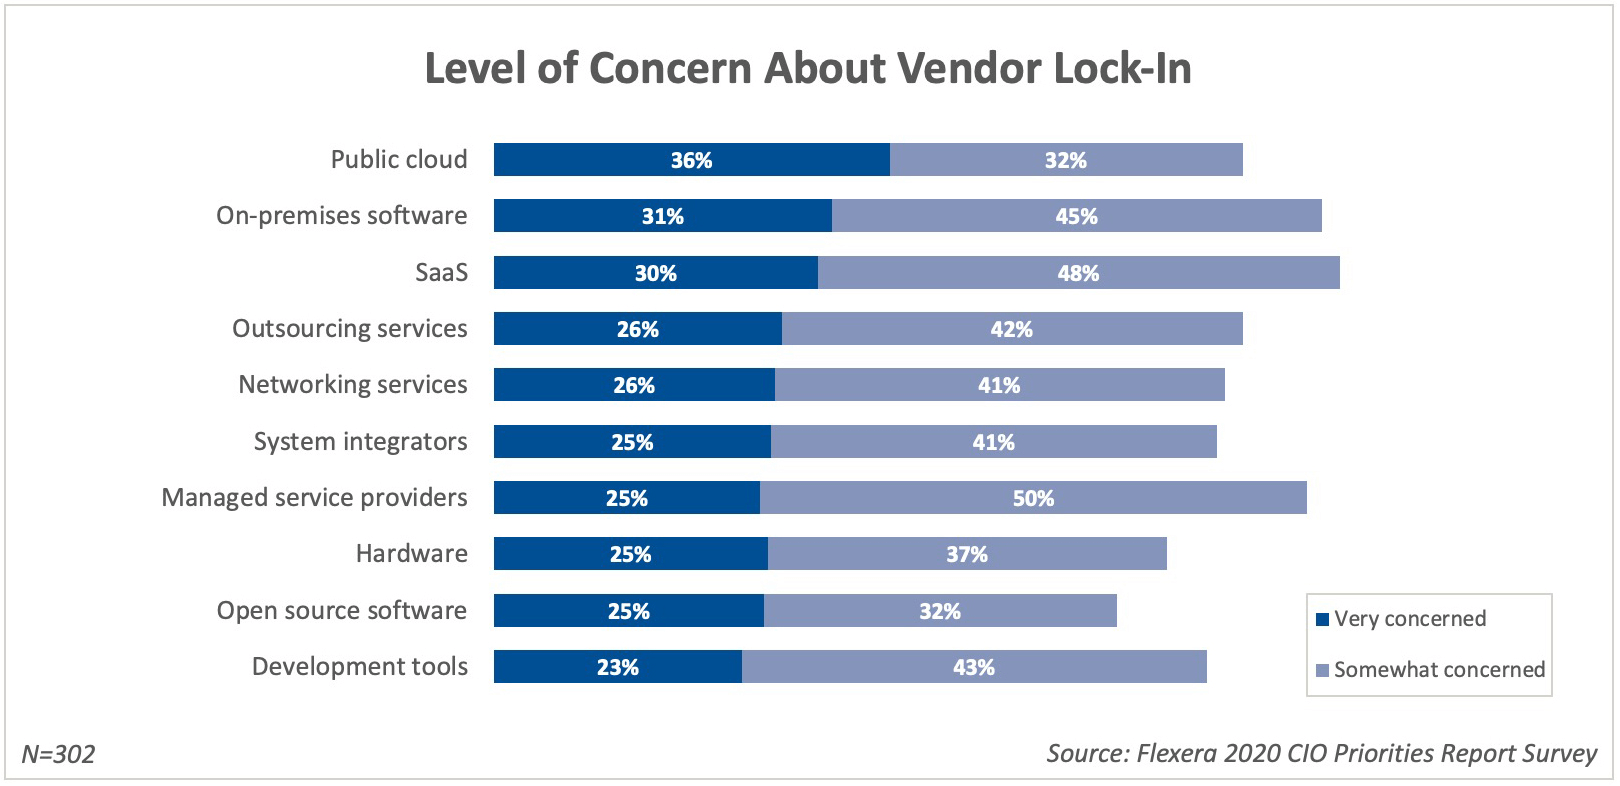 Level of Concern About Vendor Lock-In